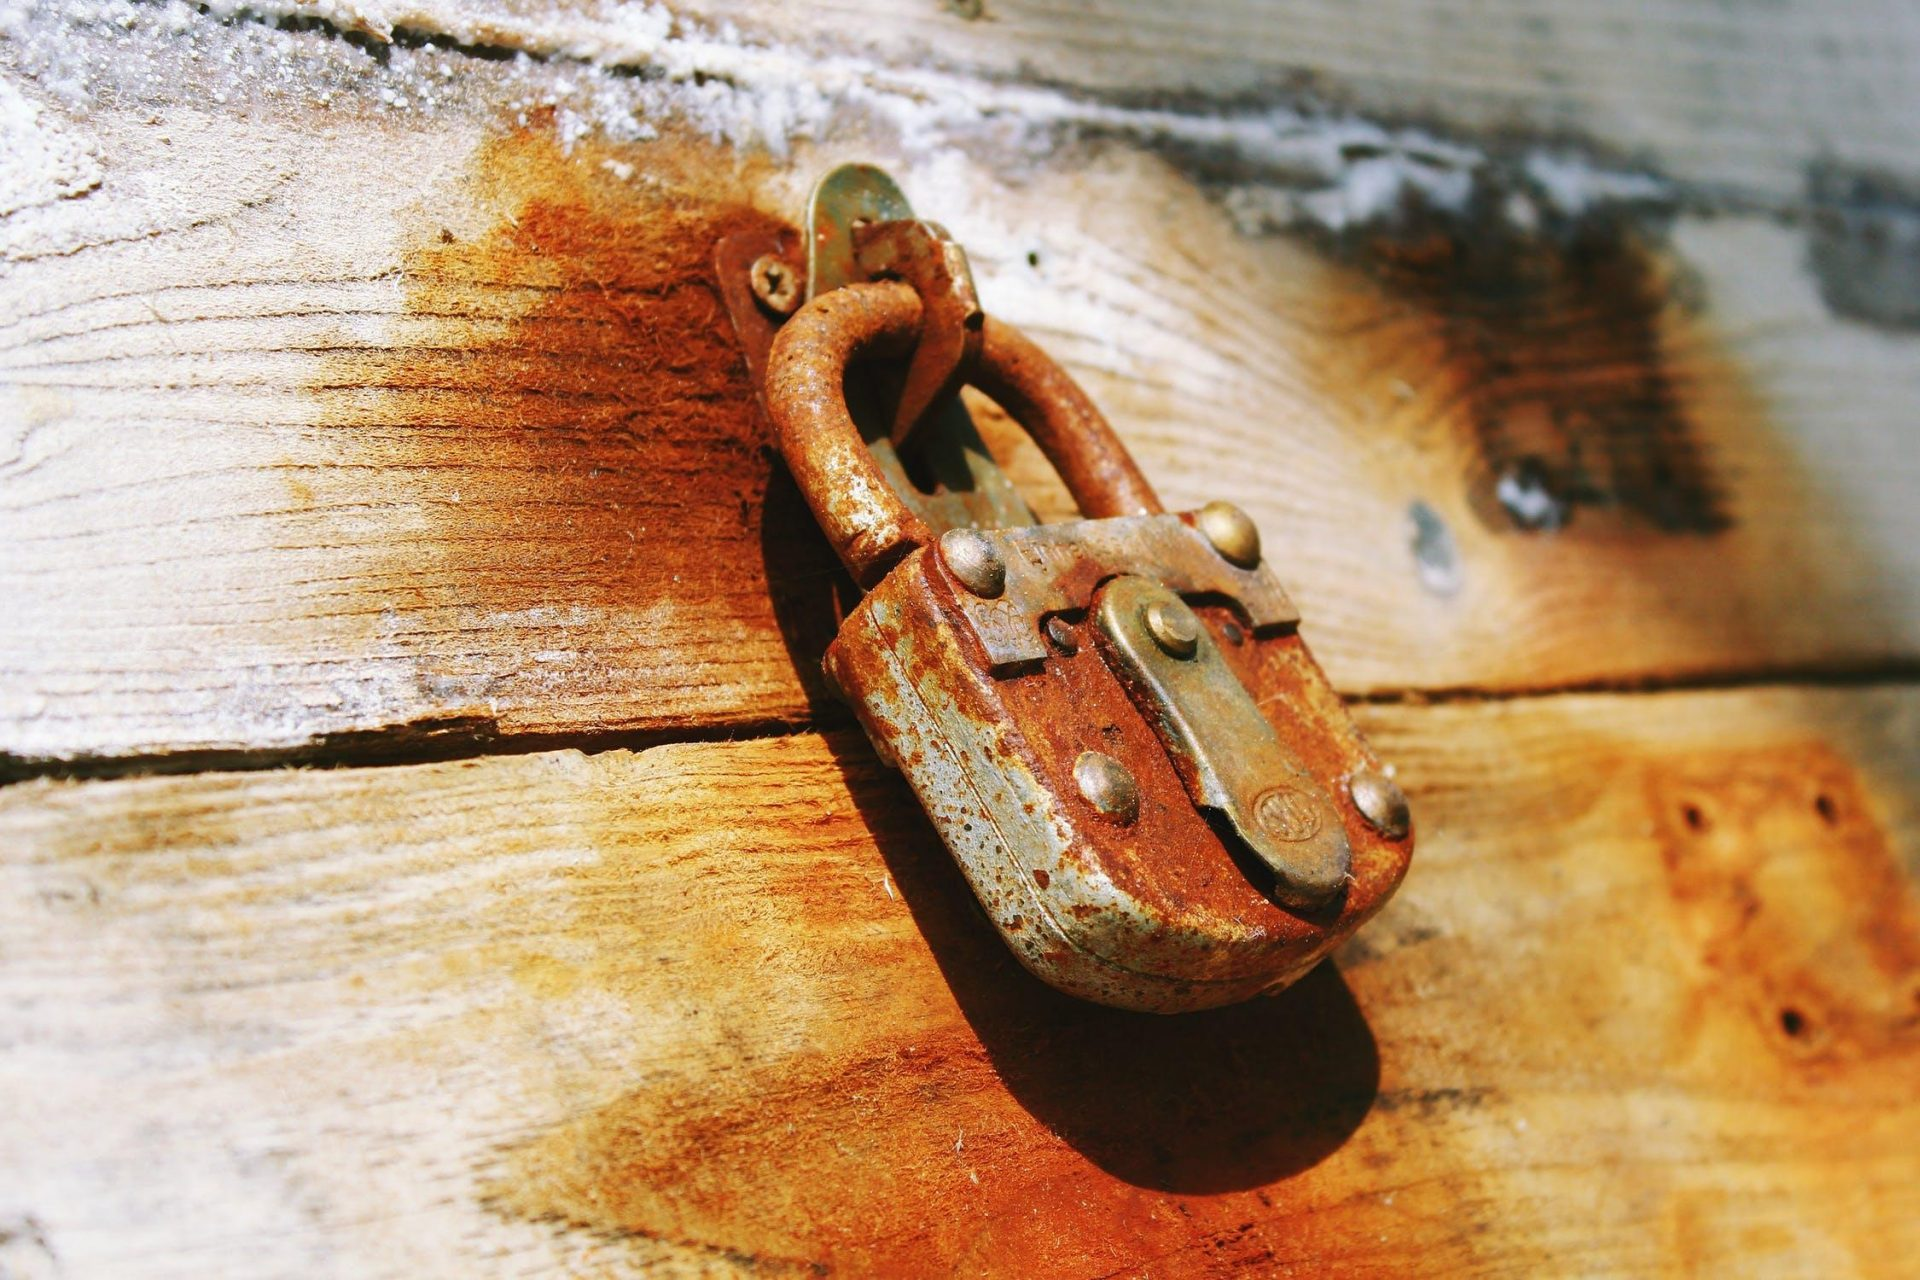 The master locksmith prepared two safes and placed each of them in two different rooms. (Image: Pexels / CC0 1.0)